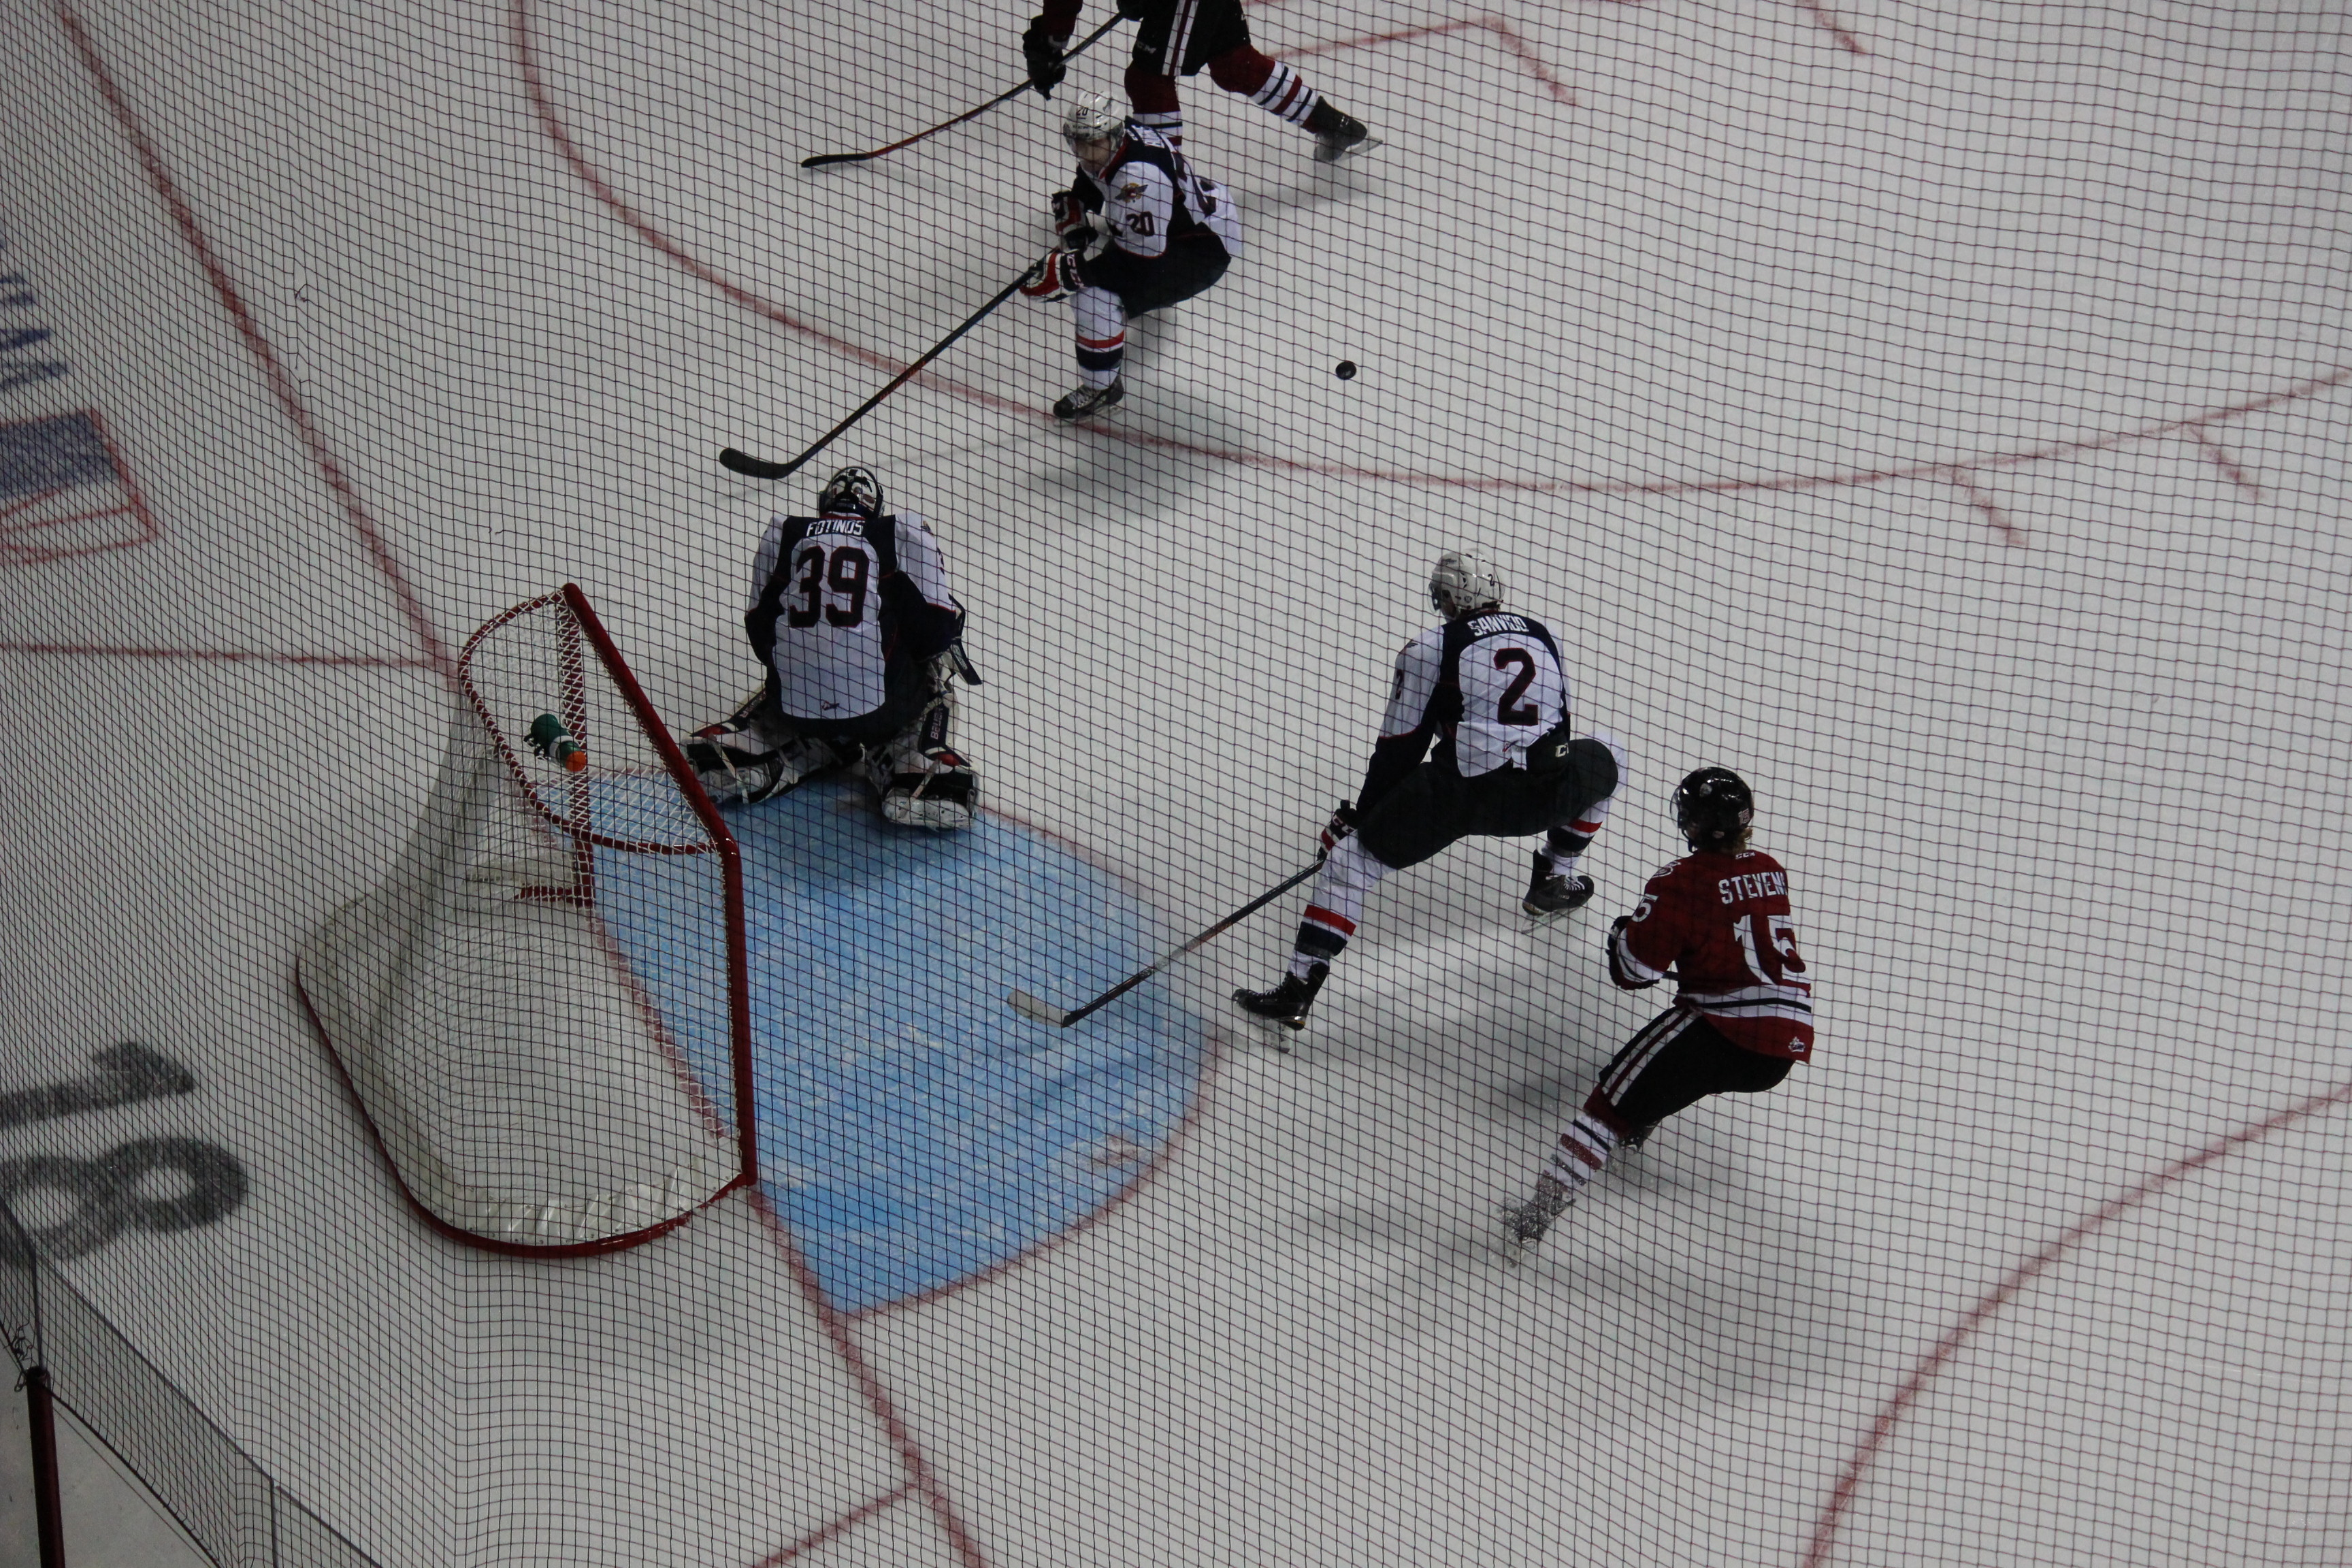 Spits Lose To Attack In OT